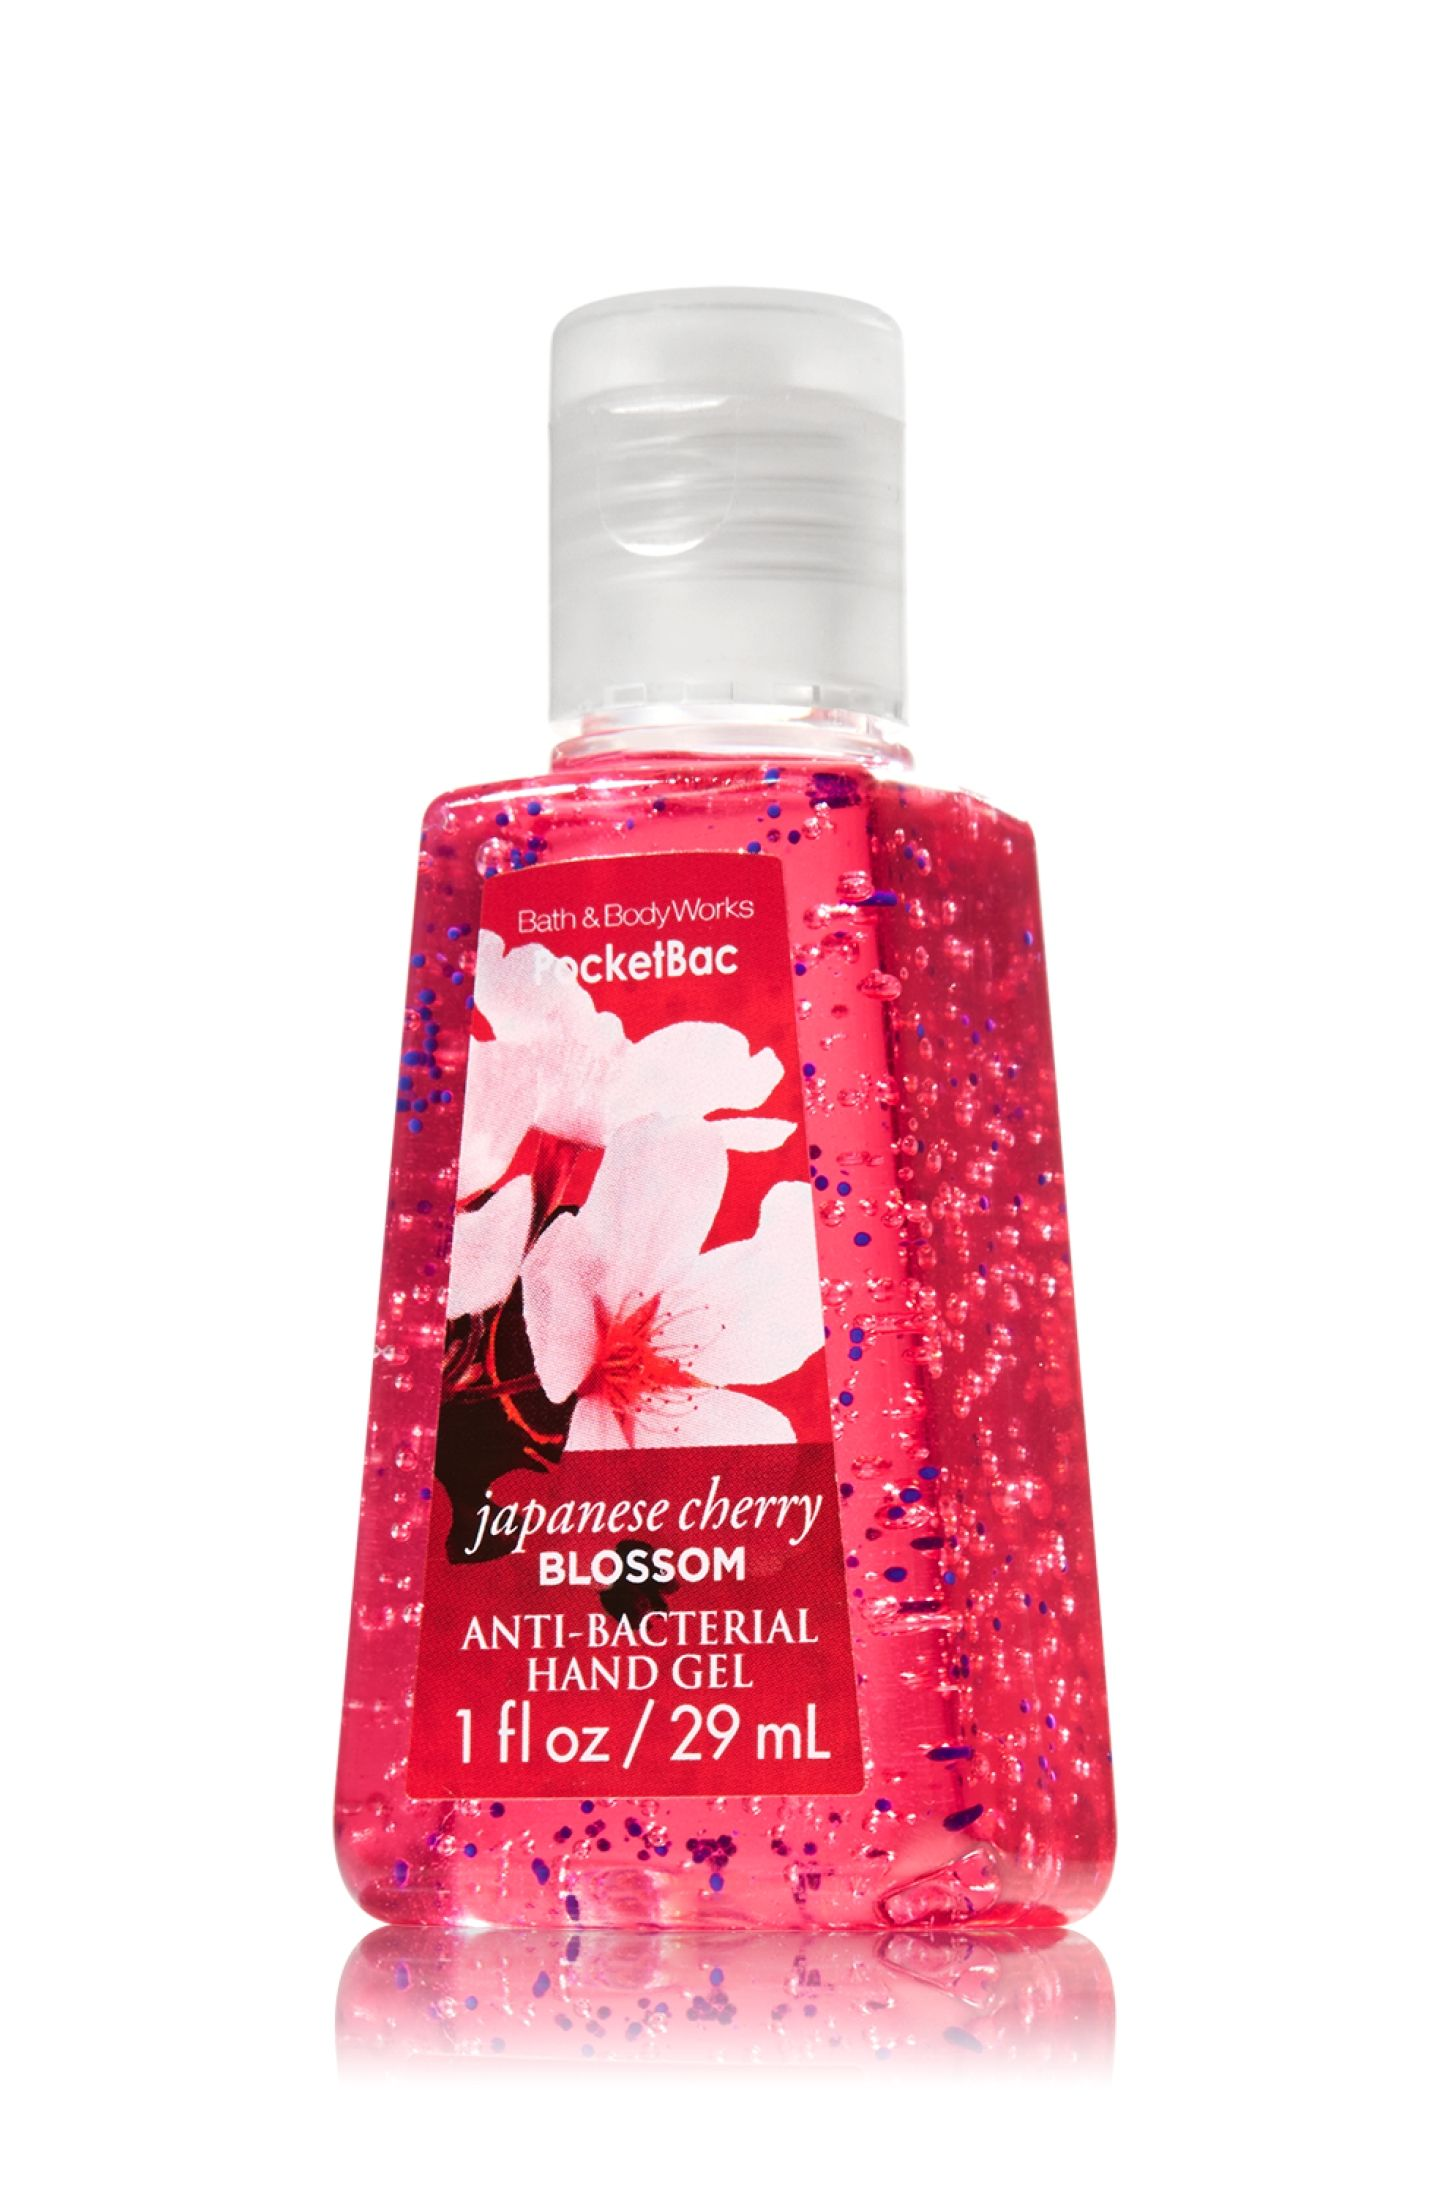 Japanese Cherry Blossom Hand Sanitizer 7 6 Fl Oz In 2020 Hand